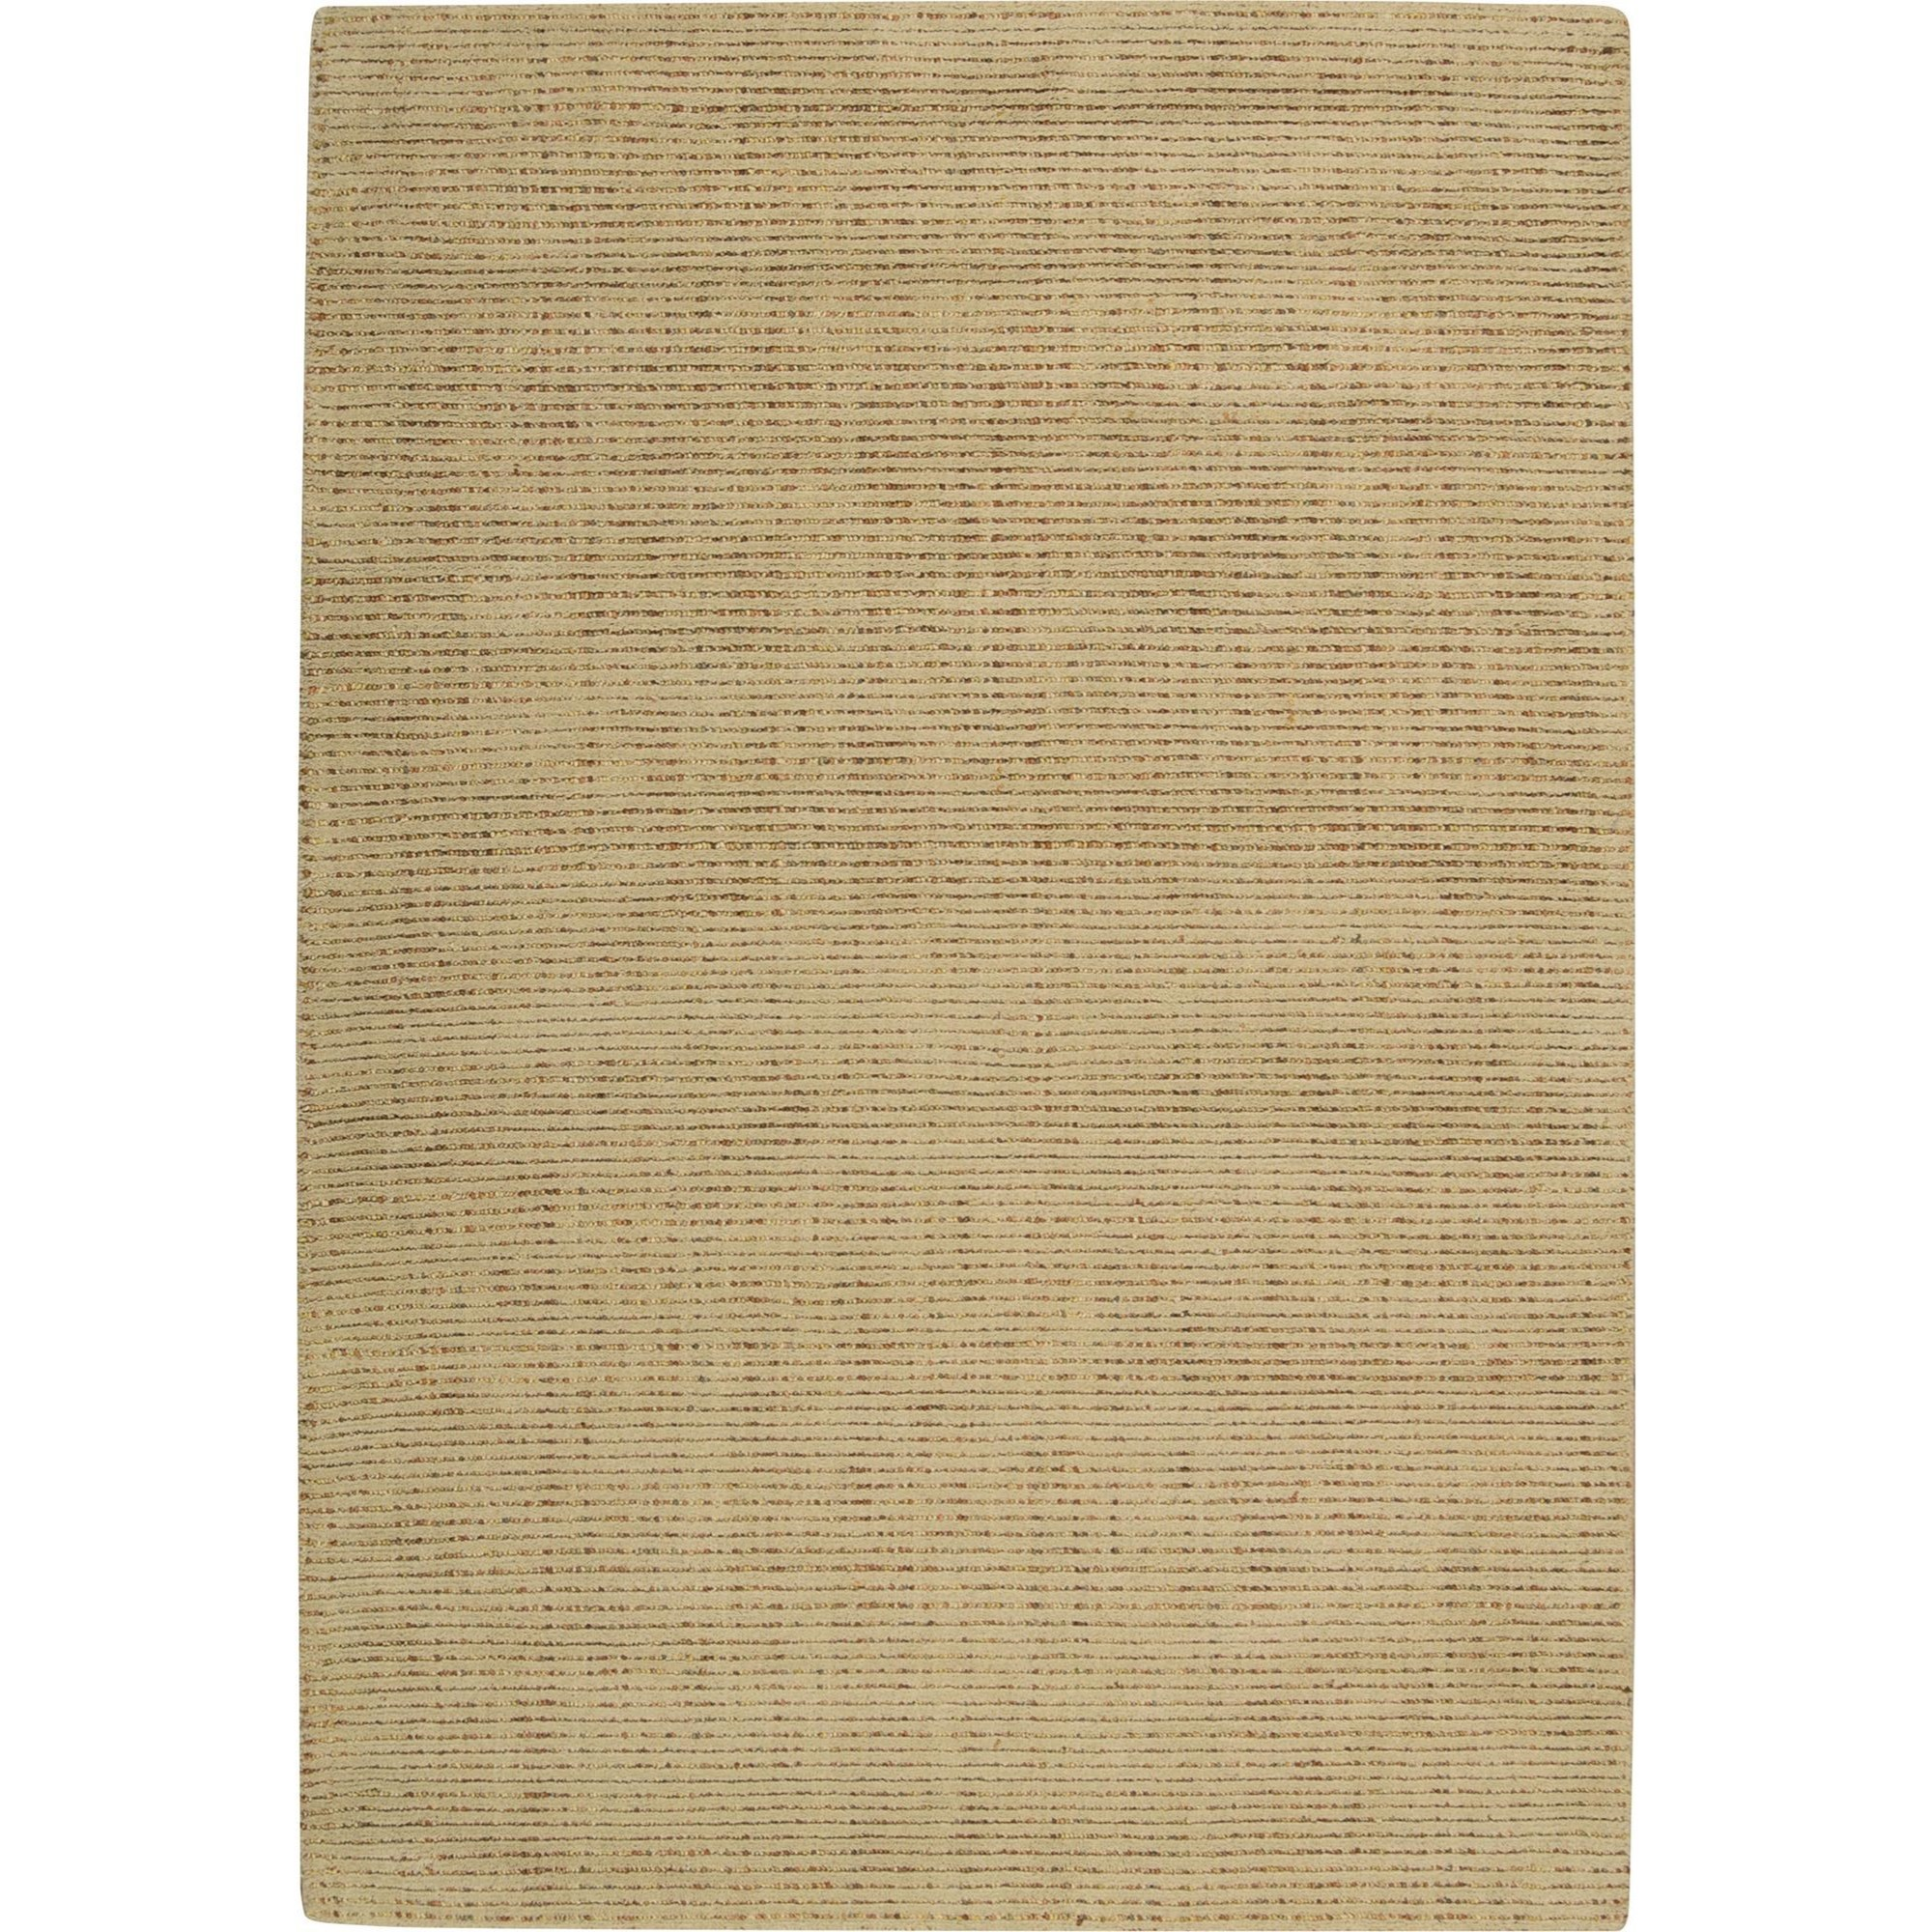 "Nourison Barclay Butera Lyfestyle - Intermix 5'3"" x 7'5"" Wheat Area Rug - Item Number: 29819"